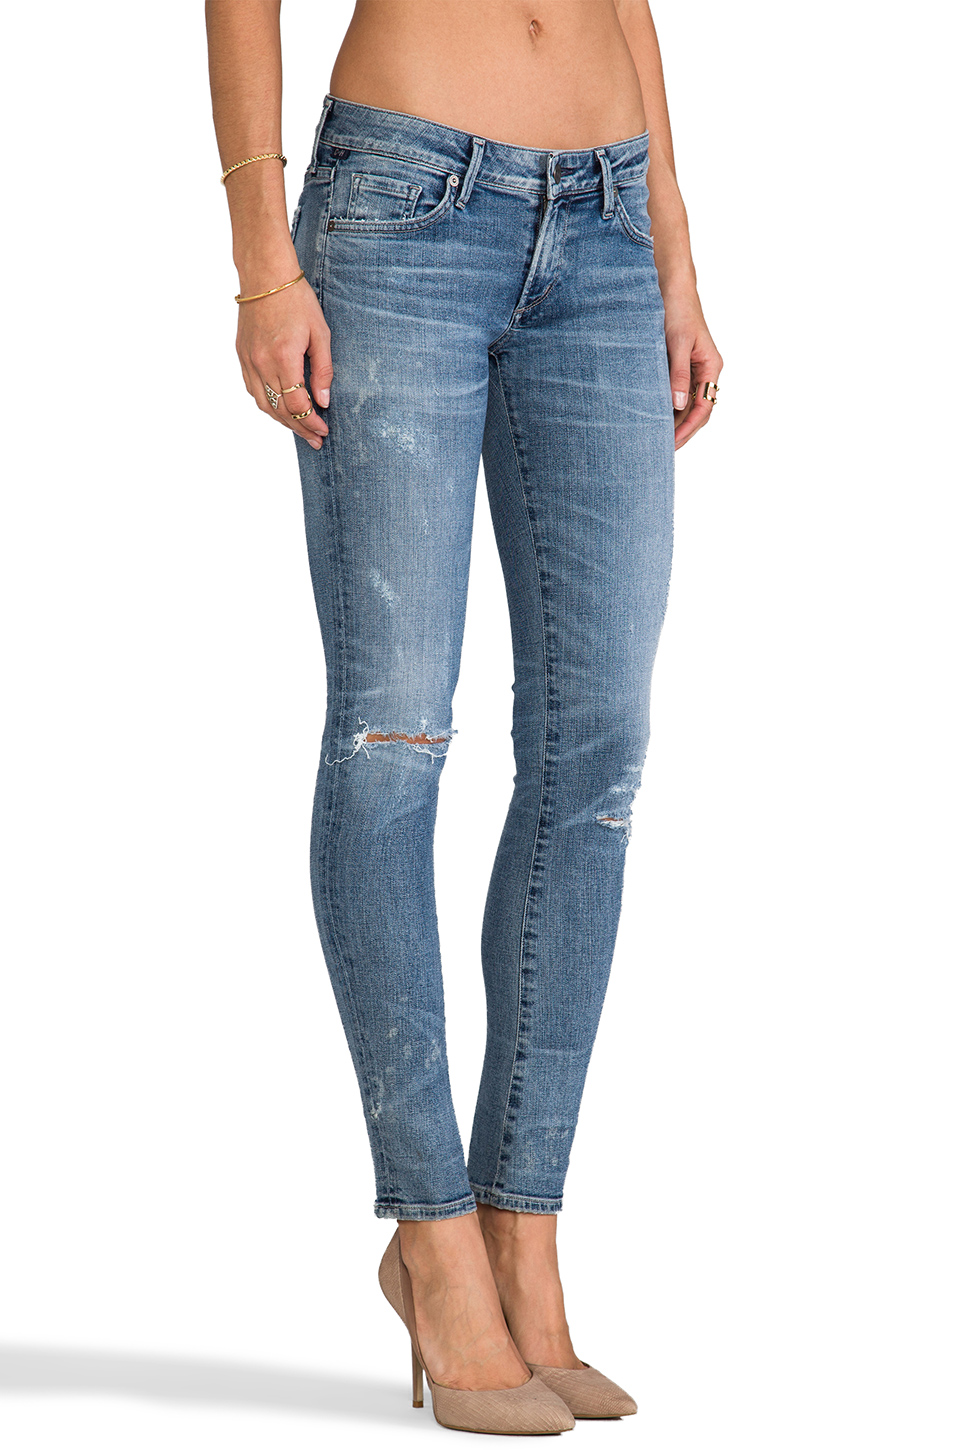 Citizens of Humanity Premium Vintage Racer Low Rise Skinny in Crosby | REVOLVE